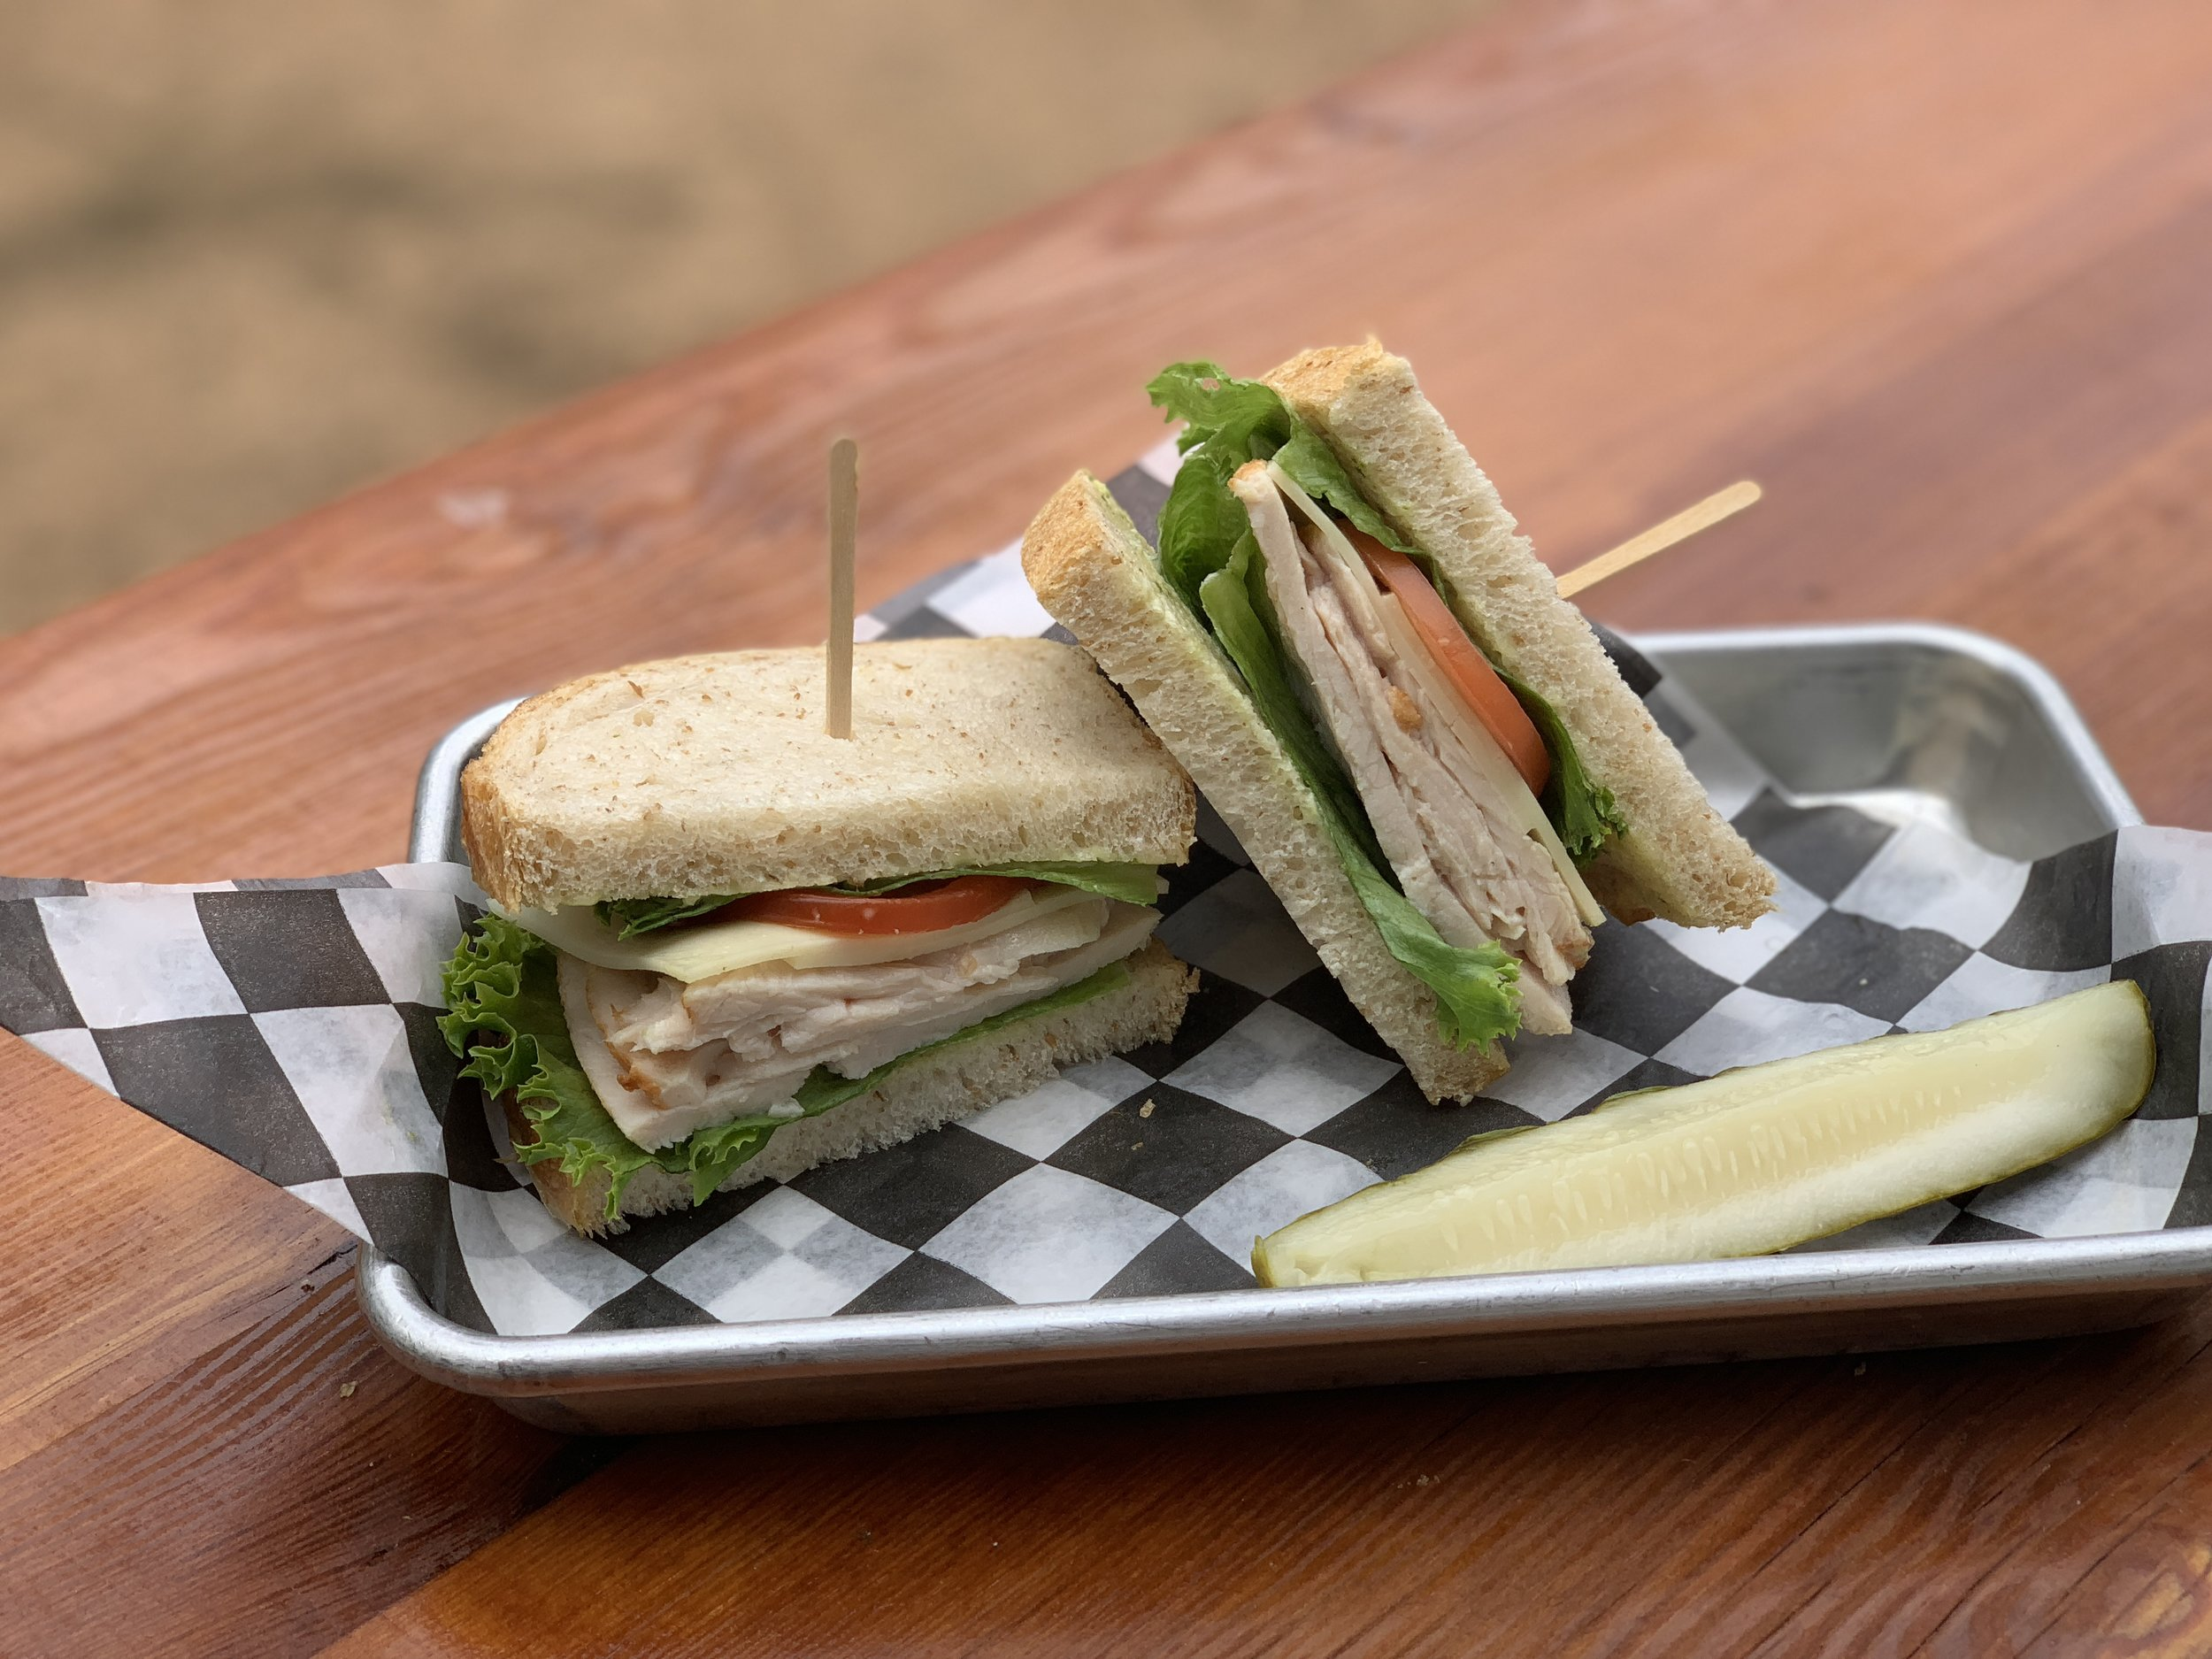 The Fitzhugh - Turkey, provolone and pesto mayo on sourdough bread. Add bacon for $1